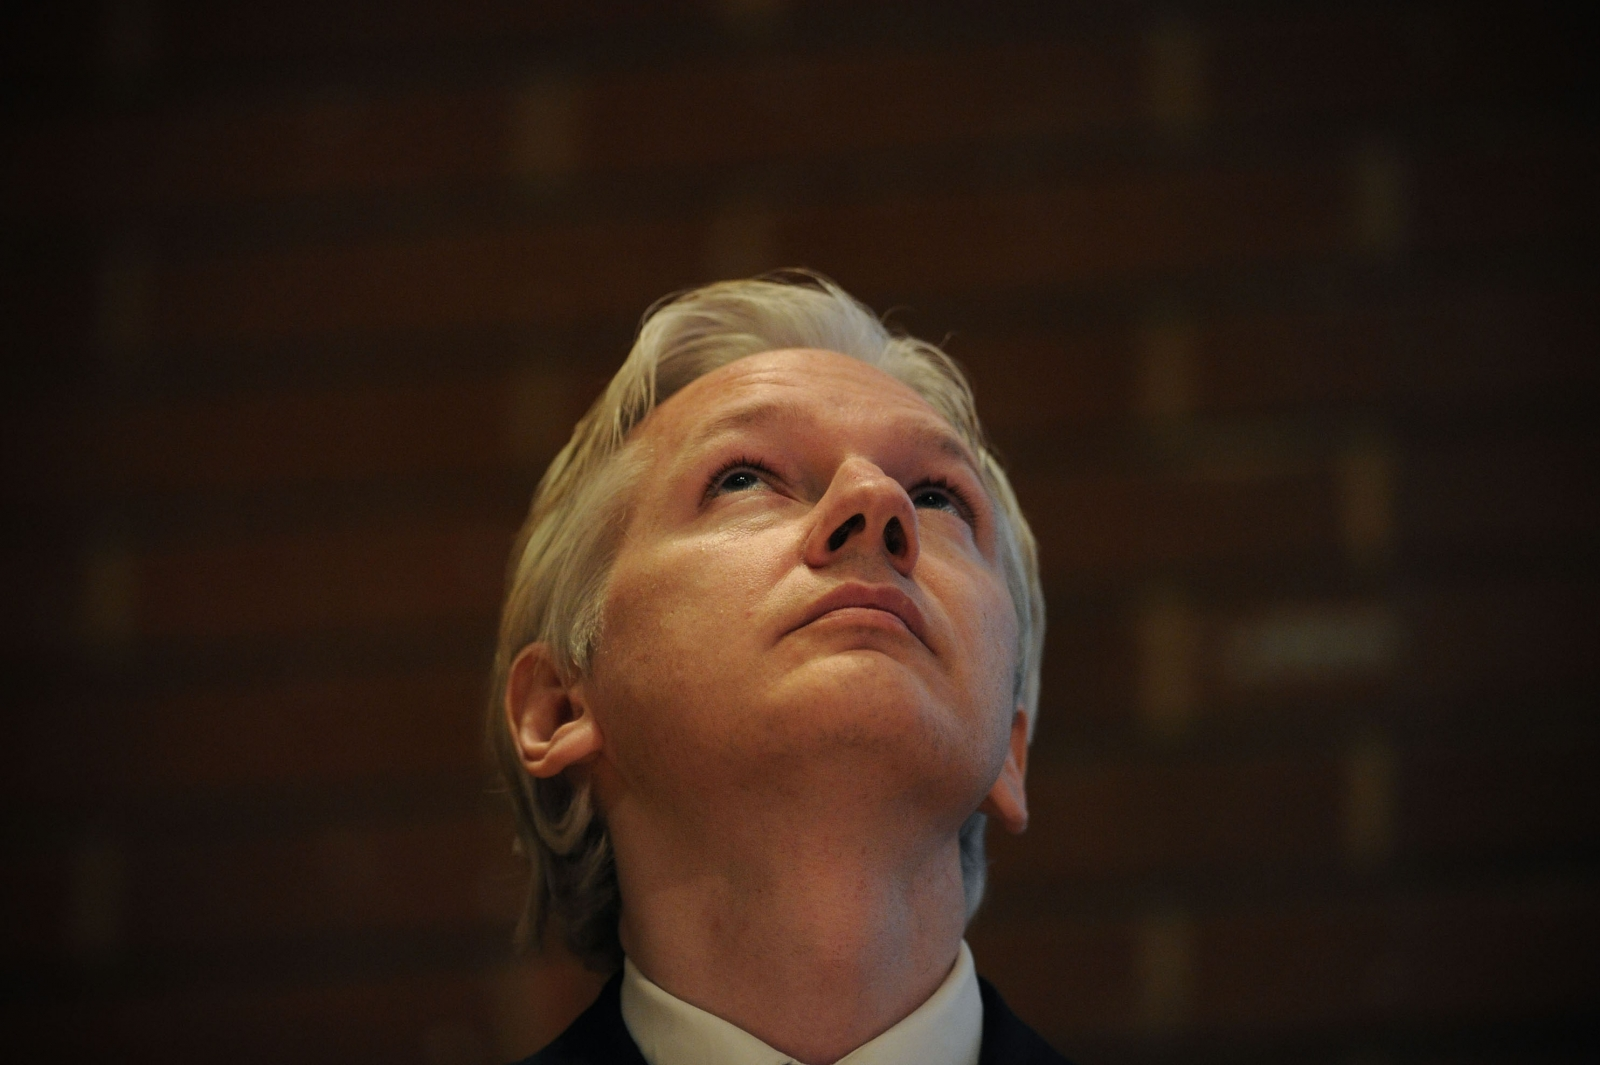 Julian Assange 'deeply shocked' and 'heartbroken' over Sweden's denial of funeral pass request